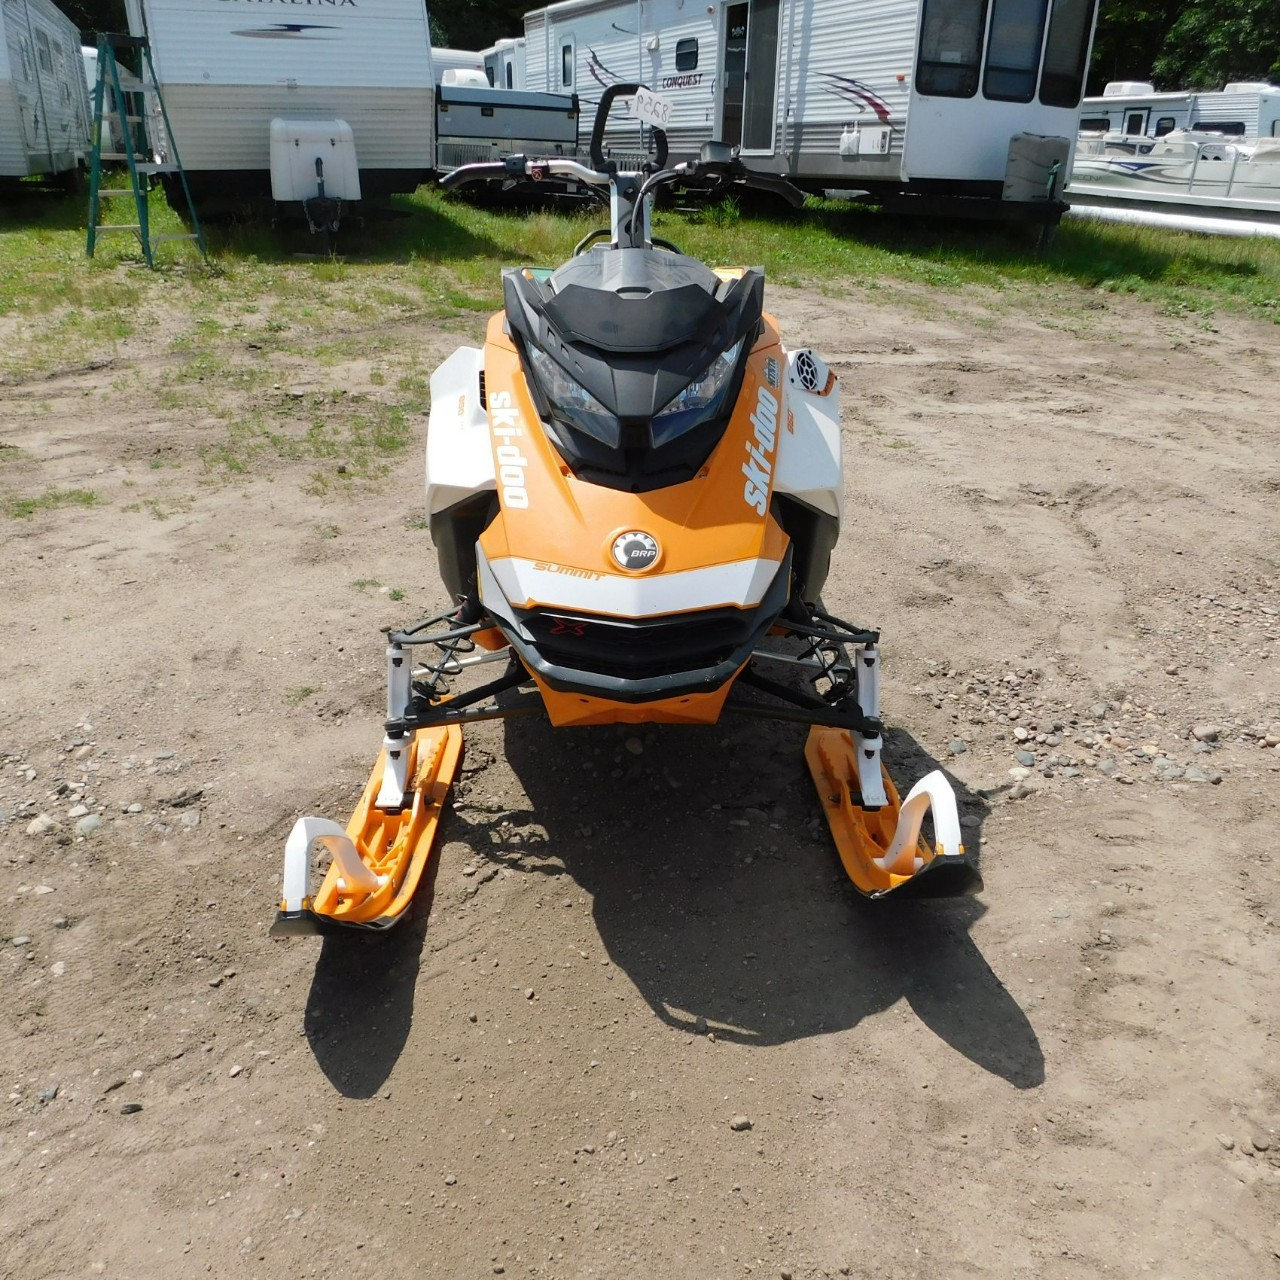 2017 Summit For Sale - Ski-Doo Snowmobiles - Snowmobile Trader